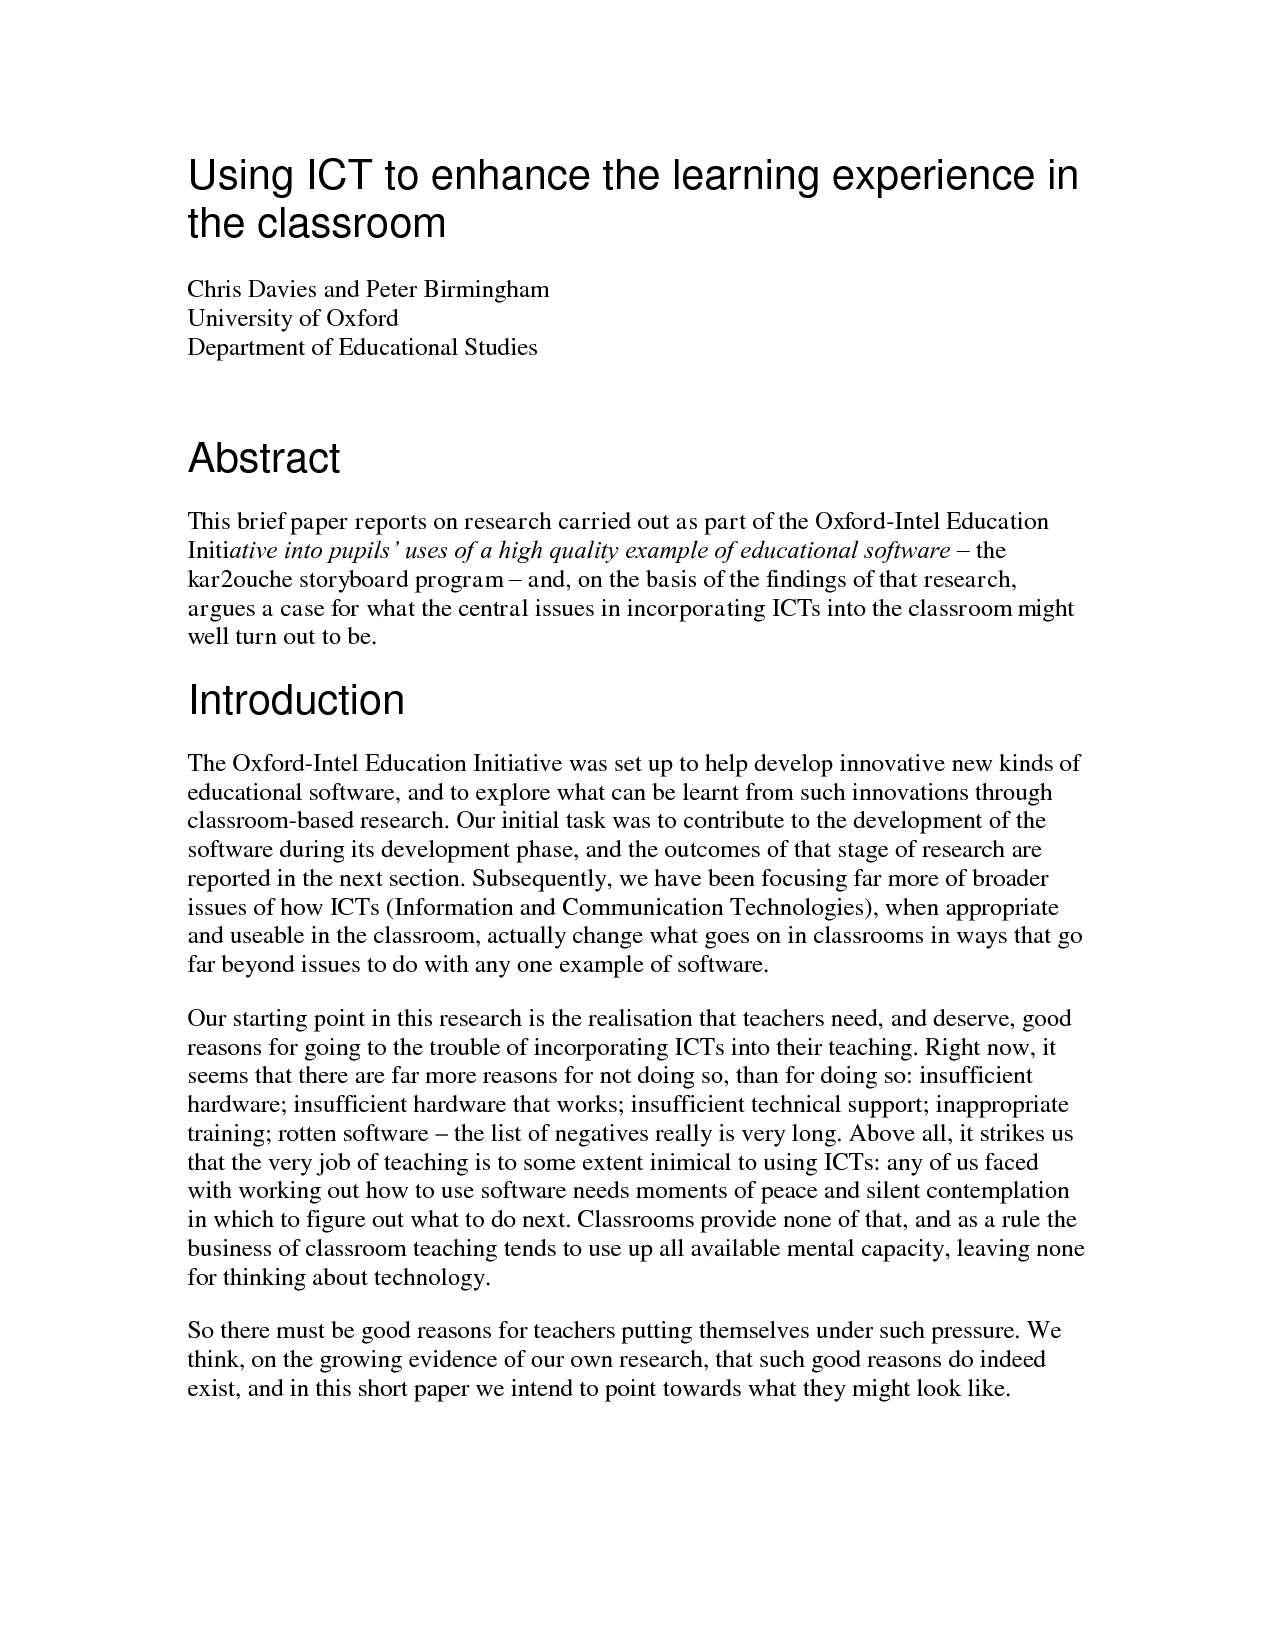 writing an abstract of a research paper original content writing an abstract of a research paper